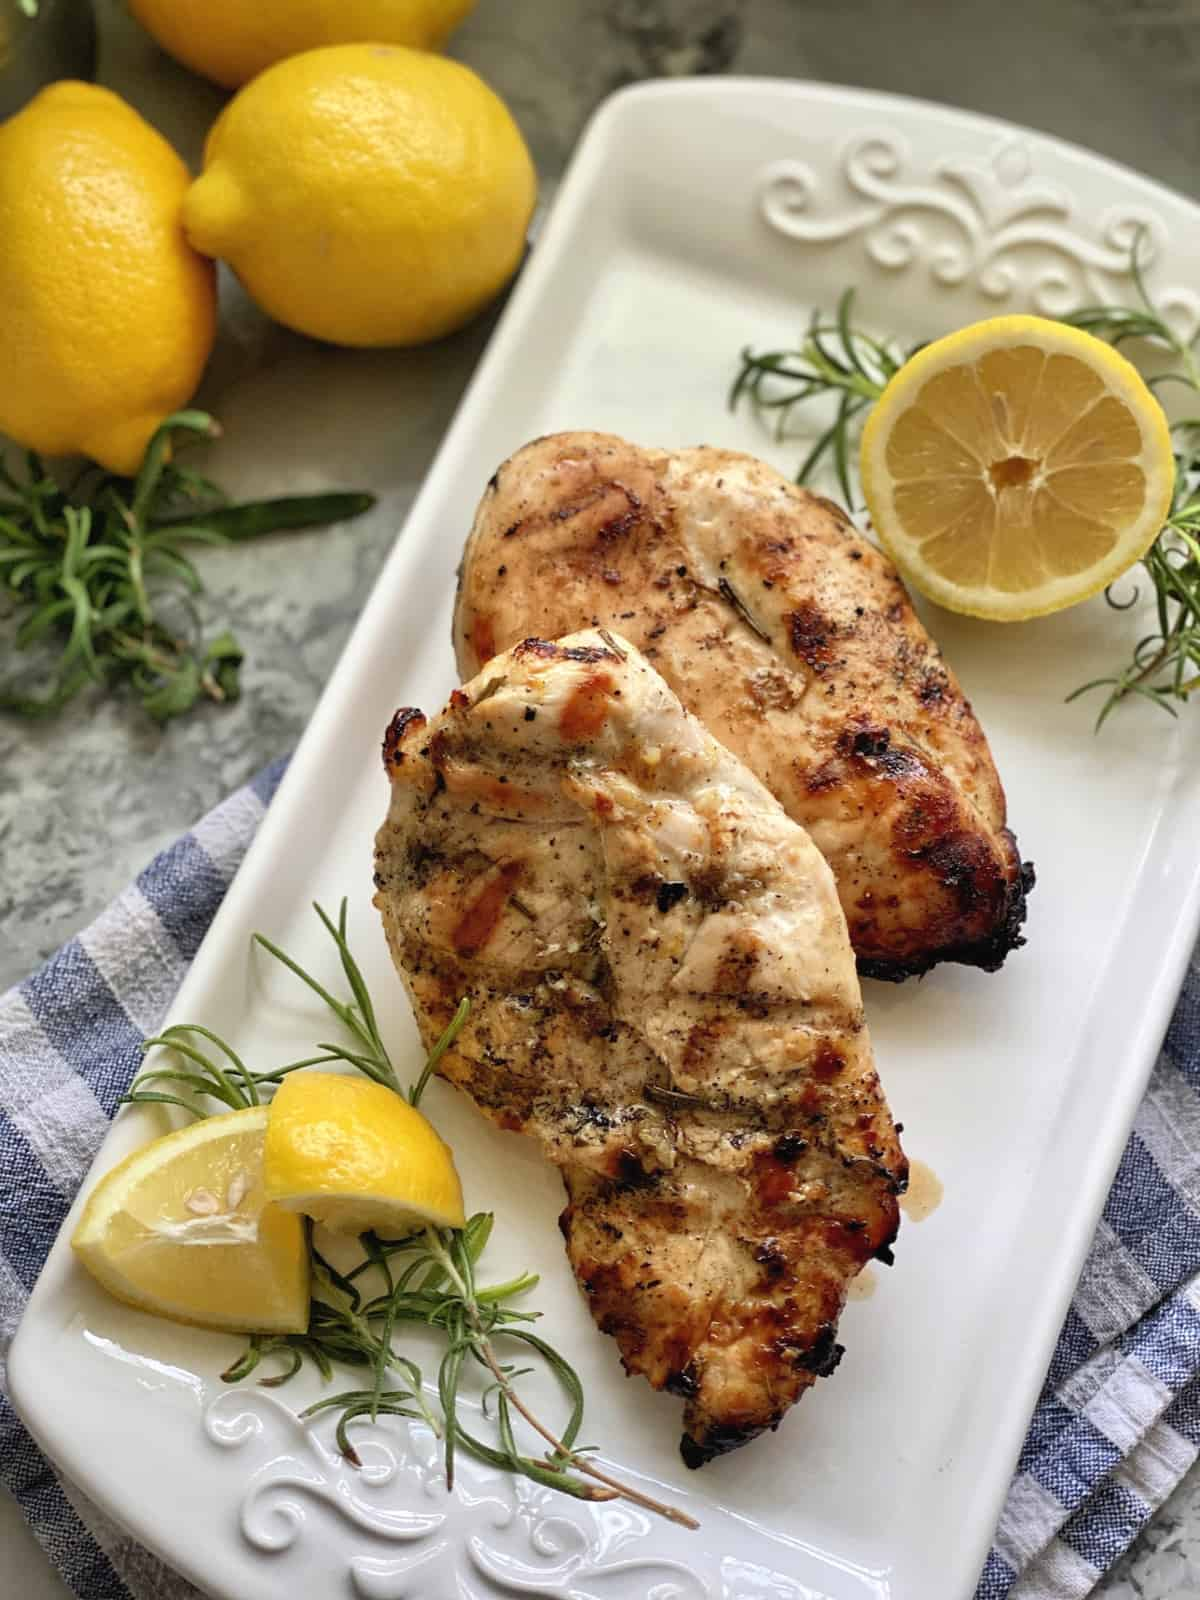 Top view of grilled chicken breast on a white platter with fresh lemon and rosemary.